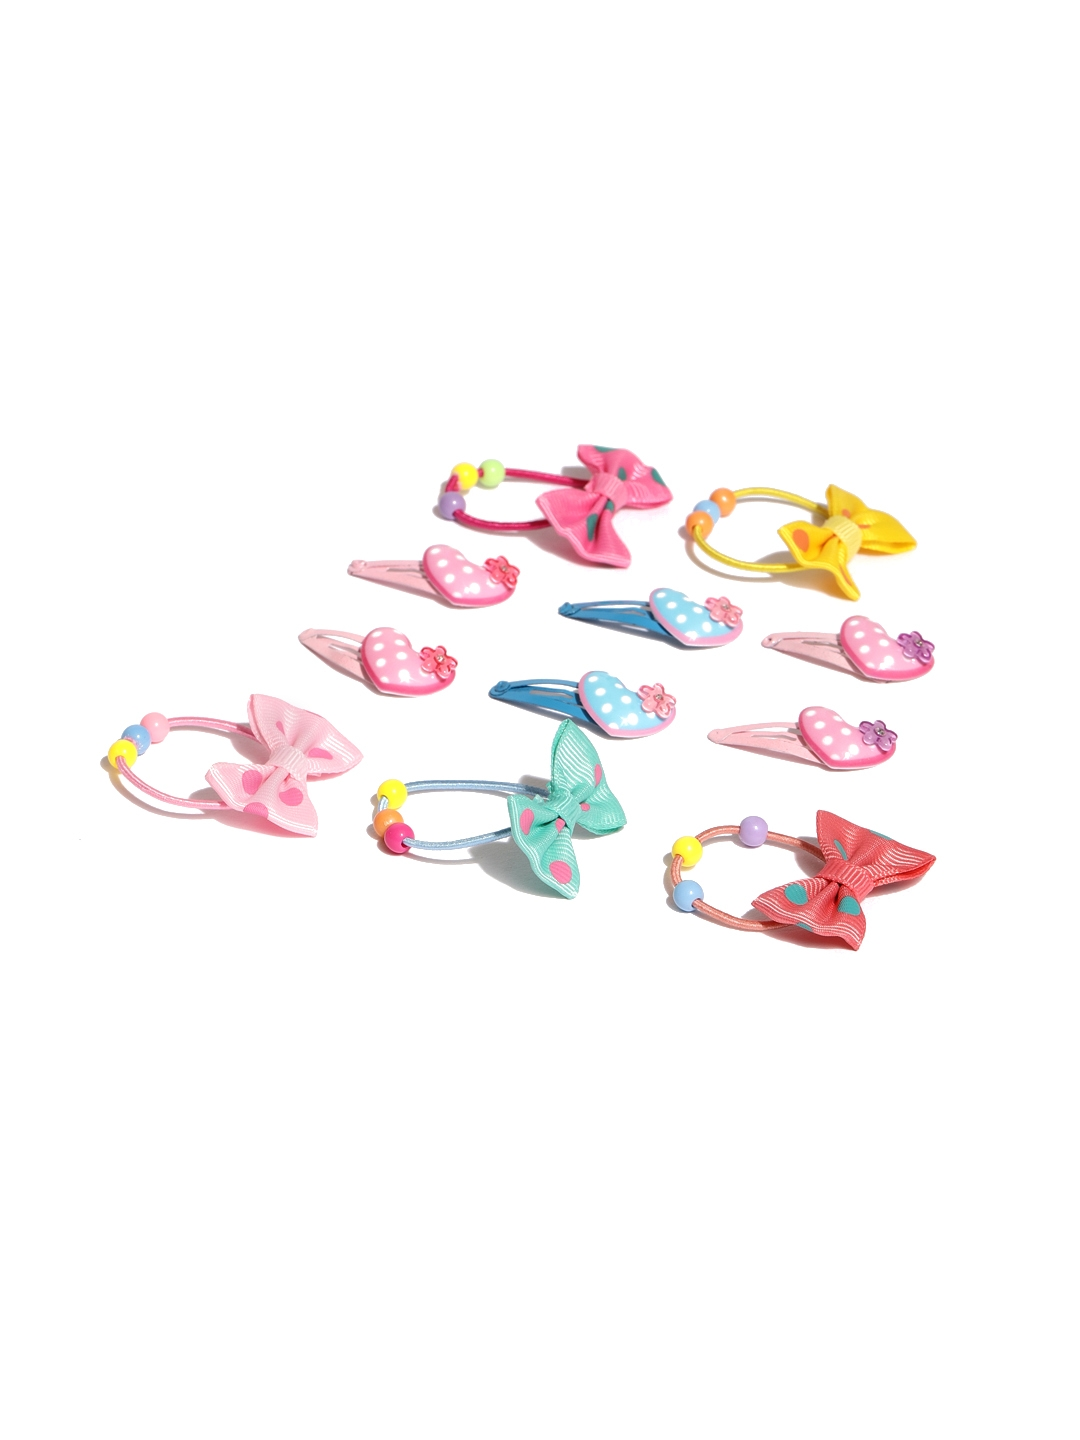 Buy Toniq Kids Hair Accessories Set Of 11 Hair Accessory For Girls